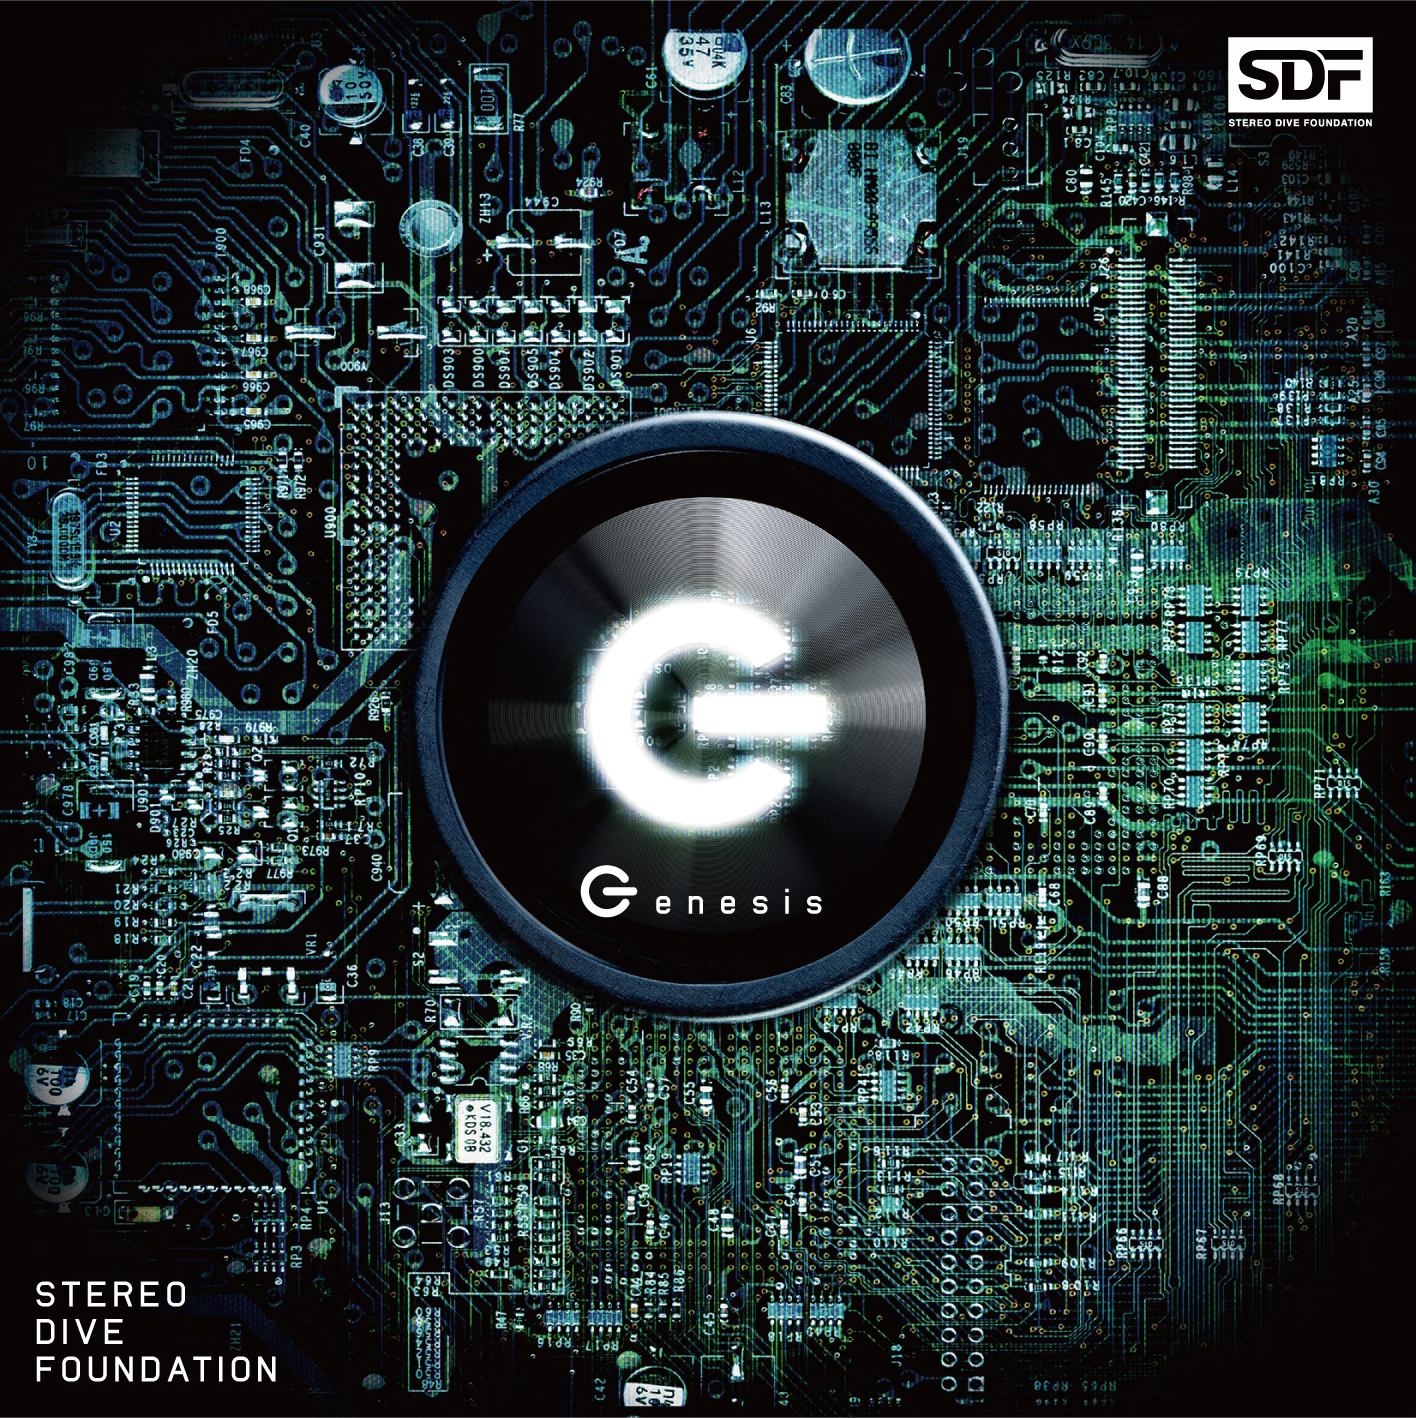 OPCD アーティスト盤「Genesis」STEREO DIVE FOUNDATION